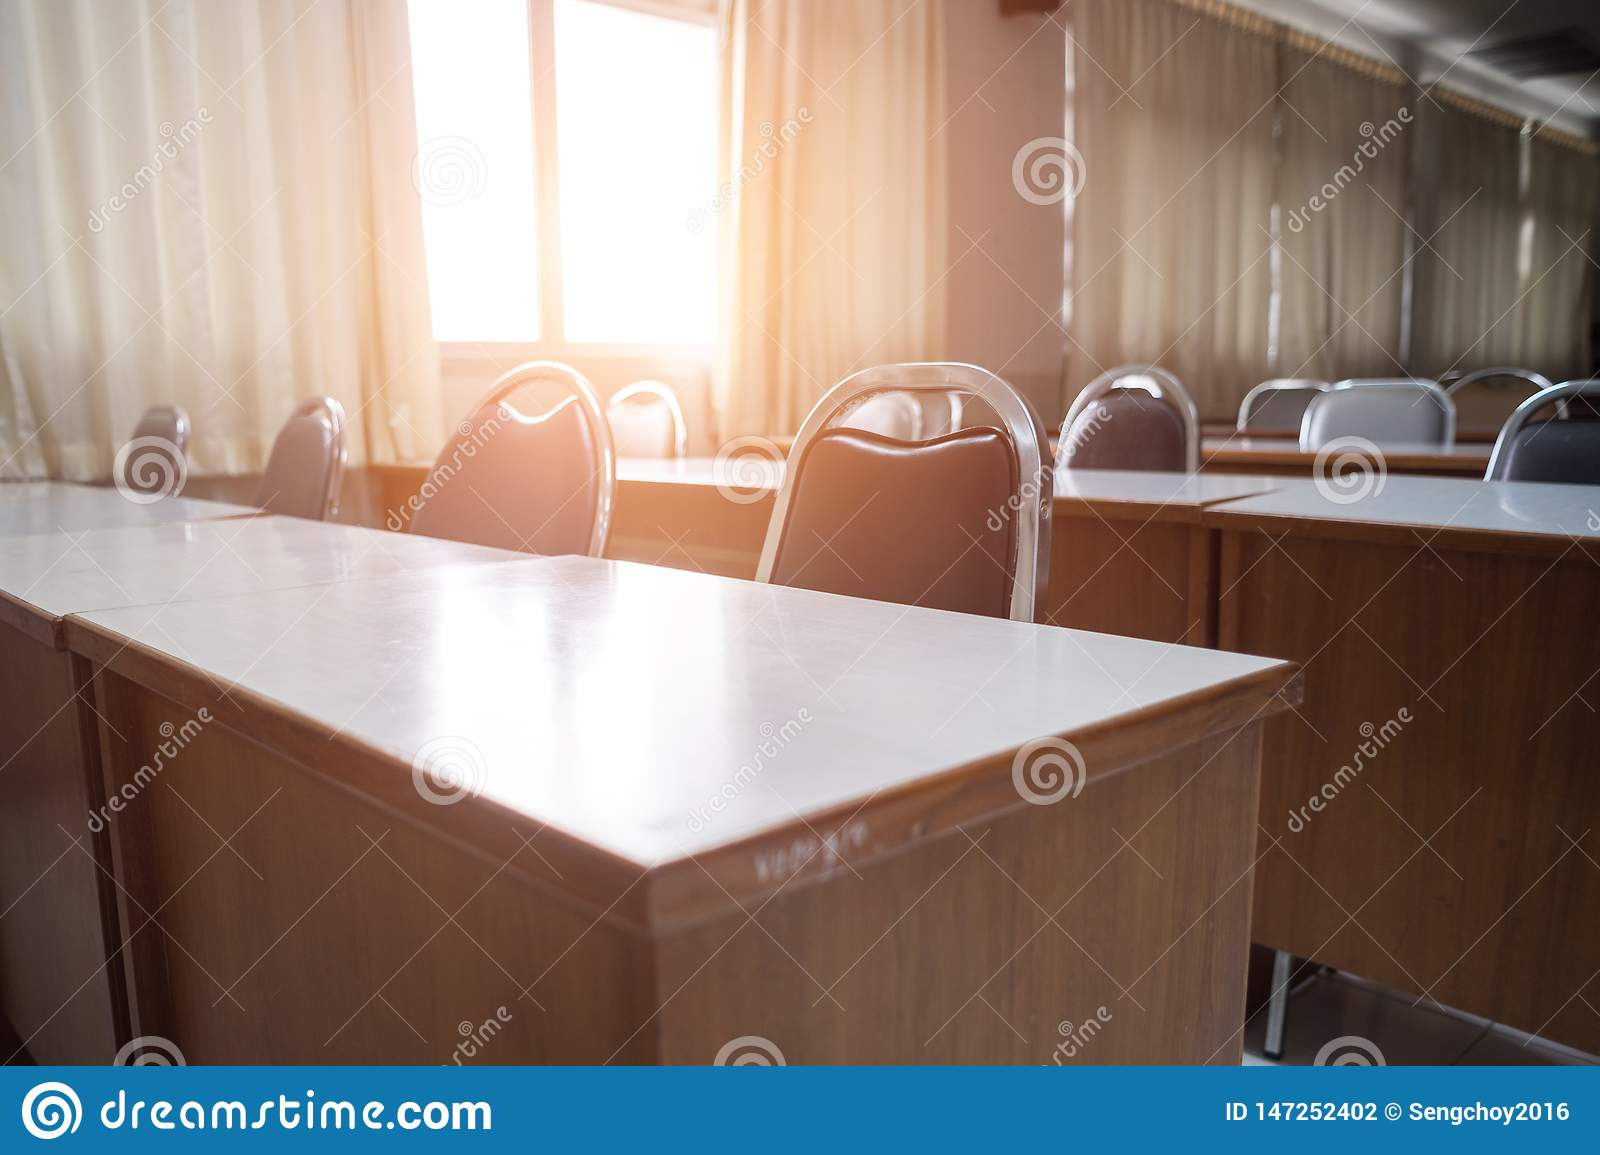 Education concept: Empty college or university classroom with wooden tables and chairs in row without student or teacher in the ro